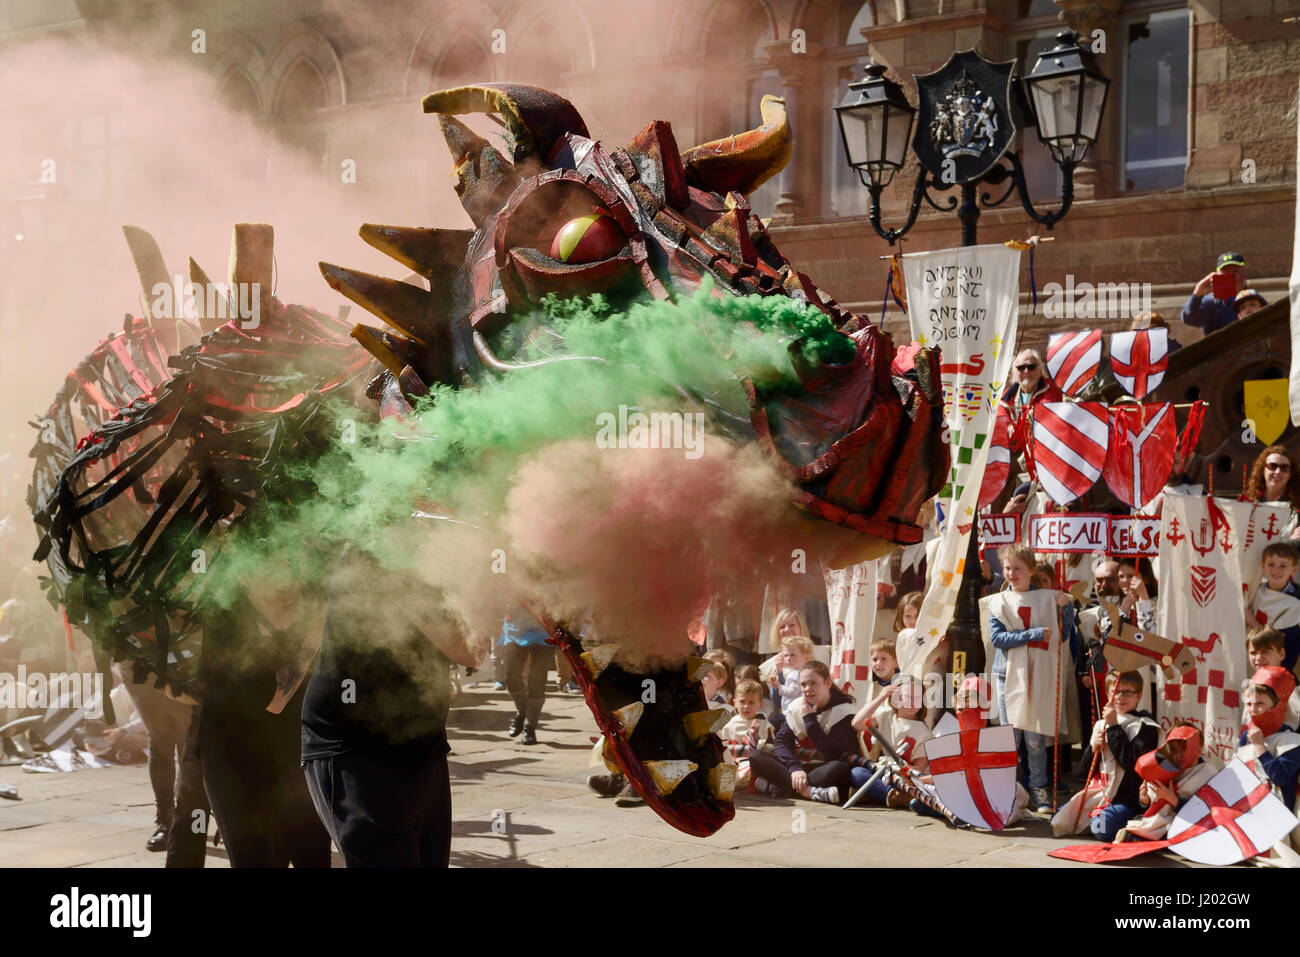 Chester, UK. 23rd April 2017. A smoke breathing dragon makes an entrance as part of the St George's day medieval - Stock Image